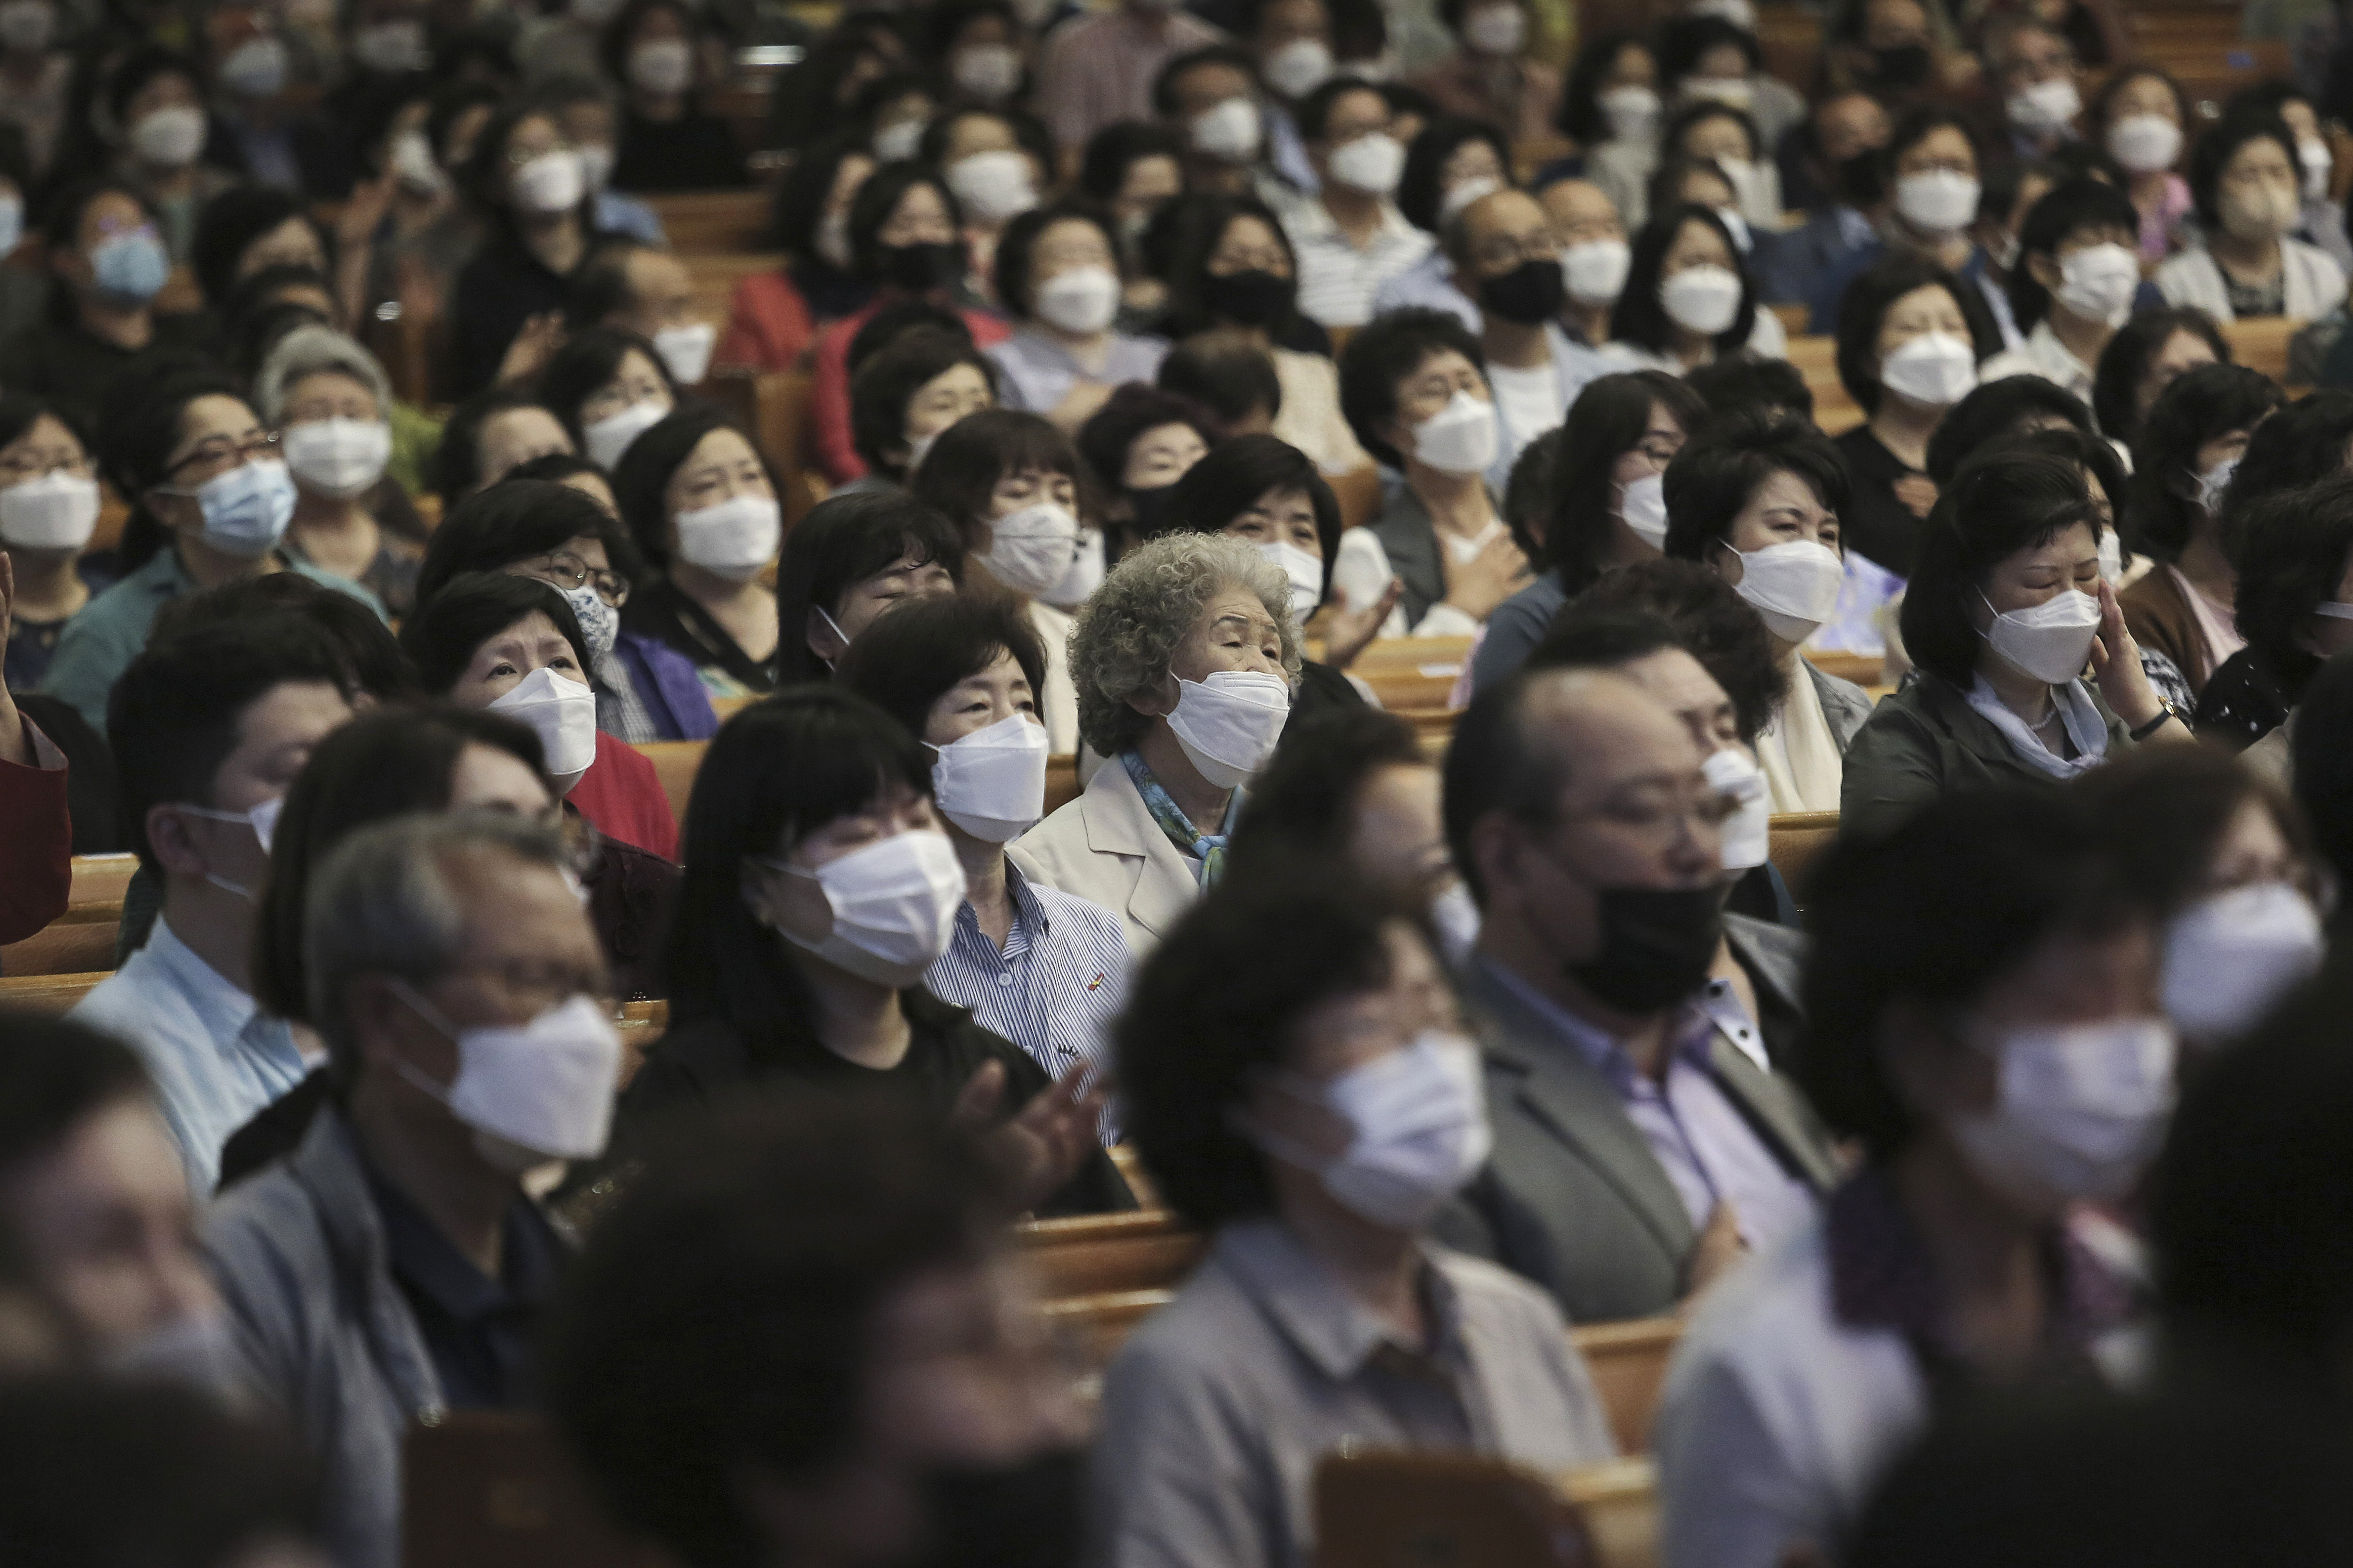 Christians wearing face masks to help protect against the spread of the new coronavirus attend a service at the Yoido Full Gospel Church in Seoul, South Korea, Sunday, May 31, 2020. (AP Photo/Ahn Young-joon)